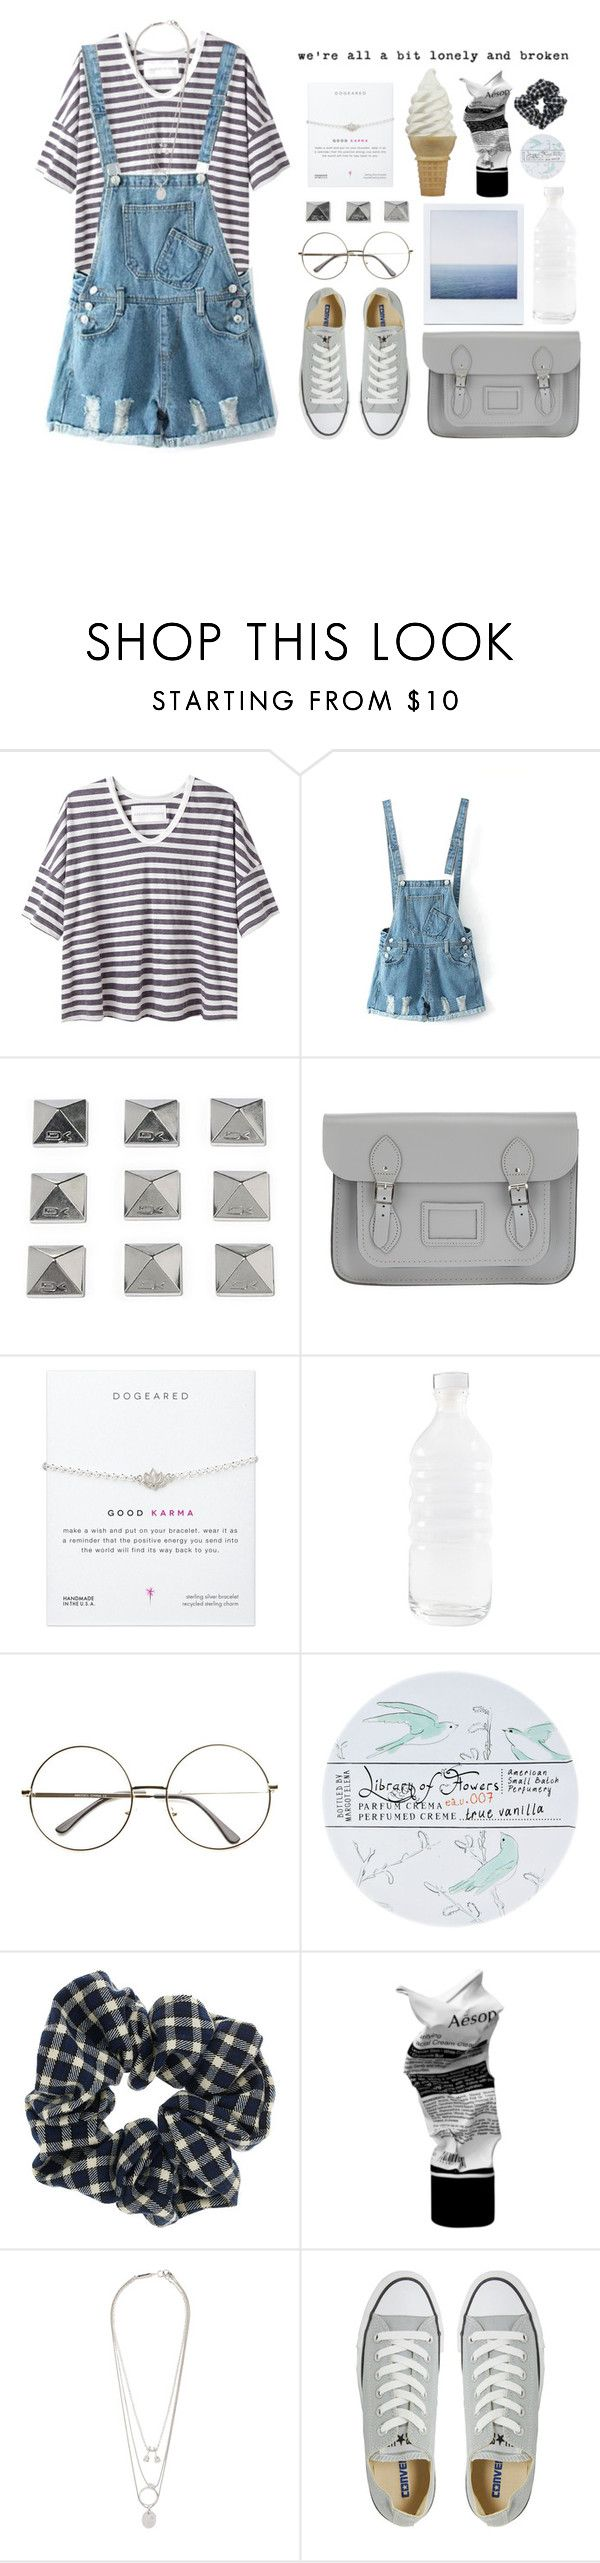 """""""#47 """"Sometimes Important Things Are Just Invisible, They can't be seen."""""""" by judy-tran2201 ❤ liked on Polyvore featuring Alexander Yamaguchi, Chicnova Fashion, Dakine, The Cambridge Satchel Company, canvas, Library of Flowers, Topshop, Aesop, Maison Margiela and Converse"""